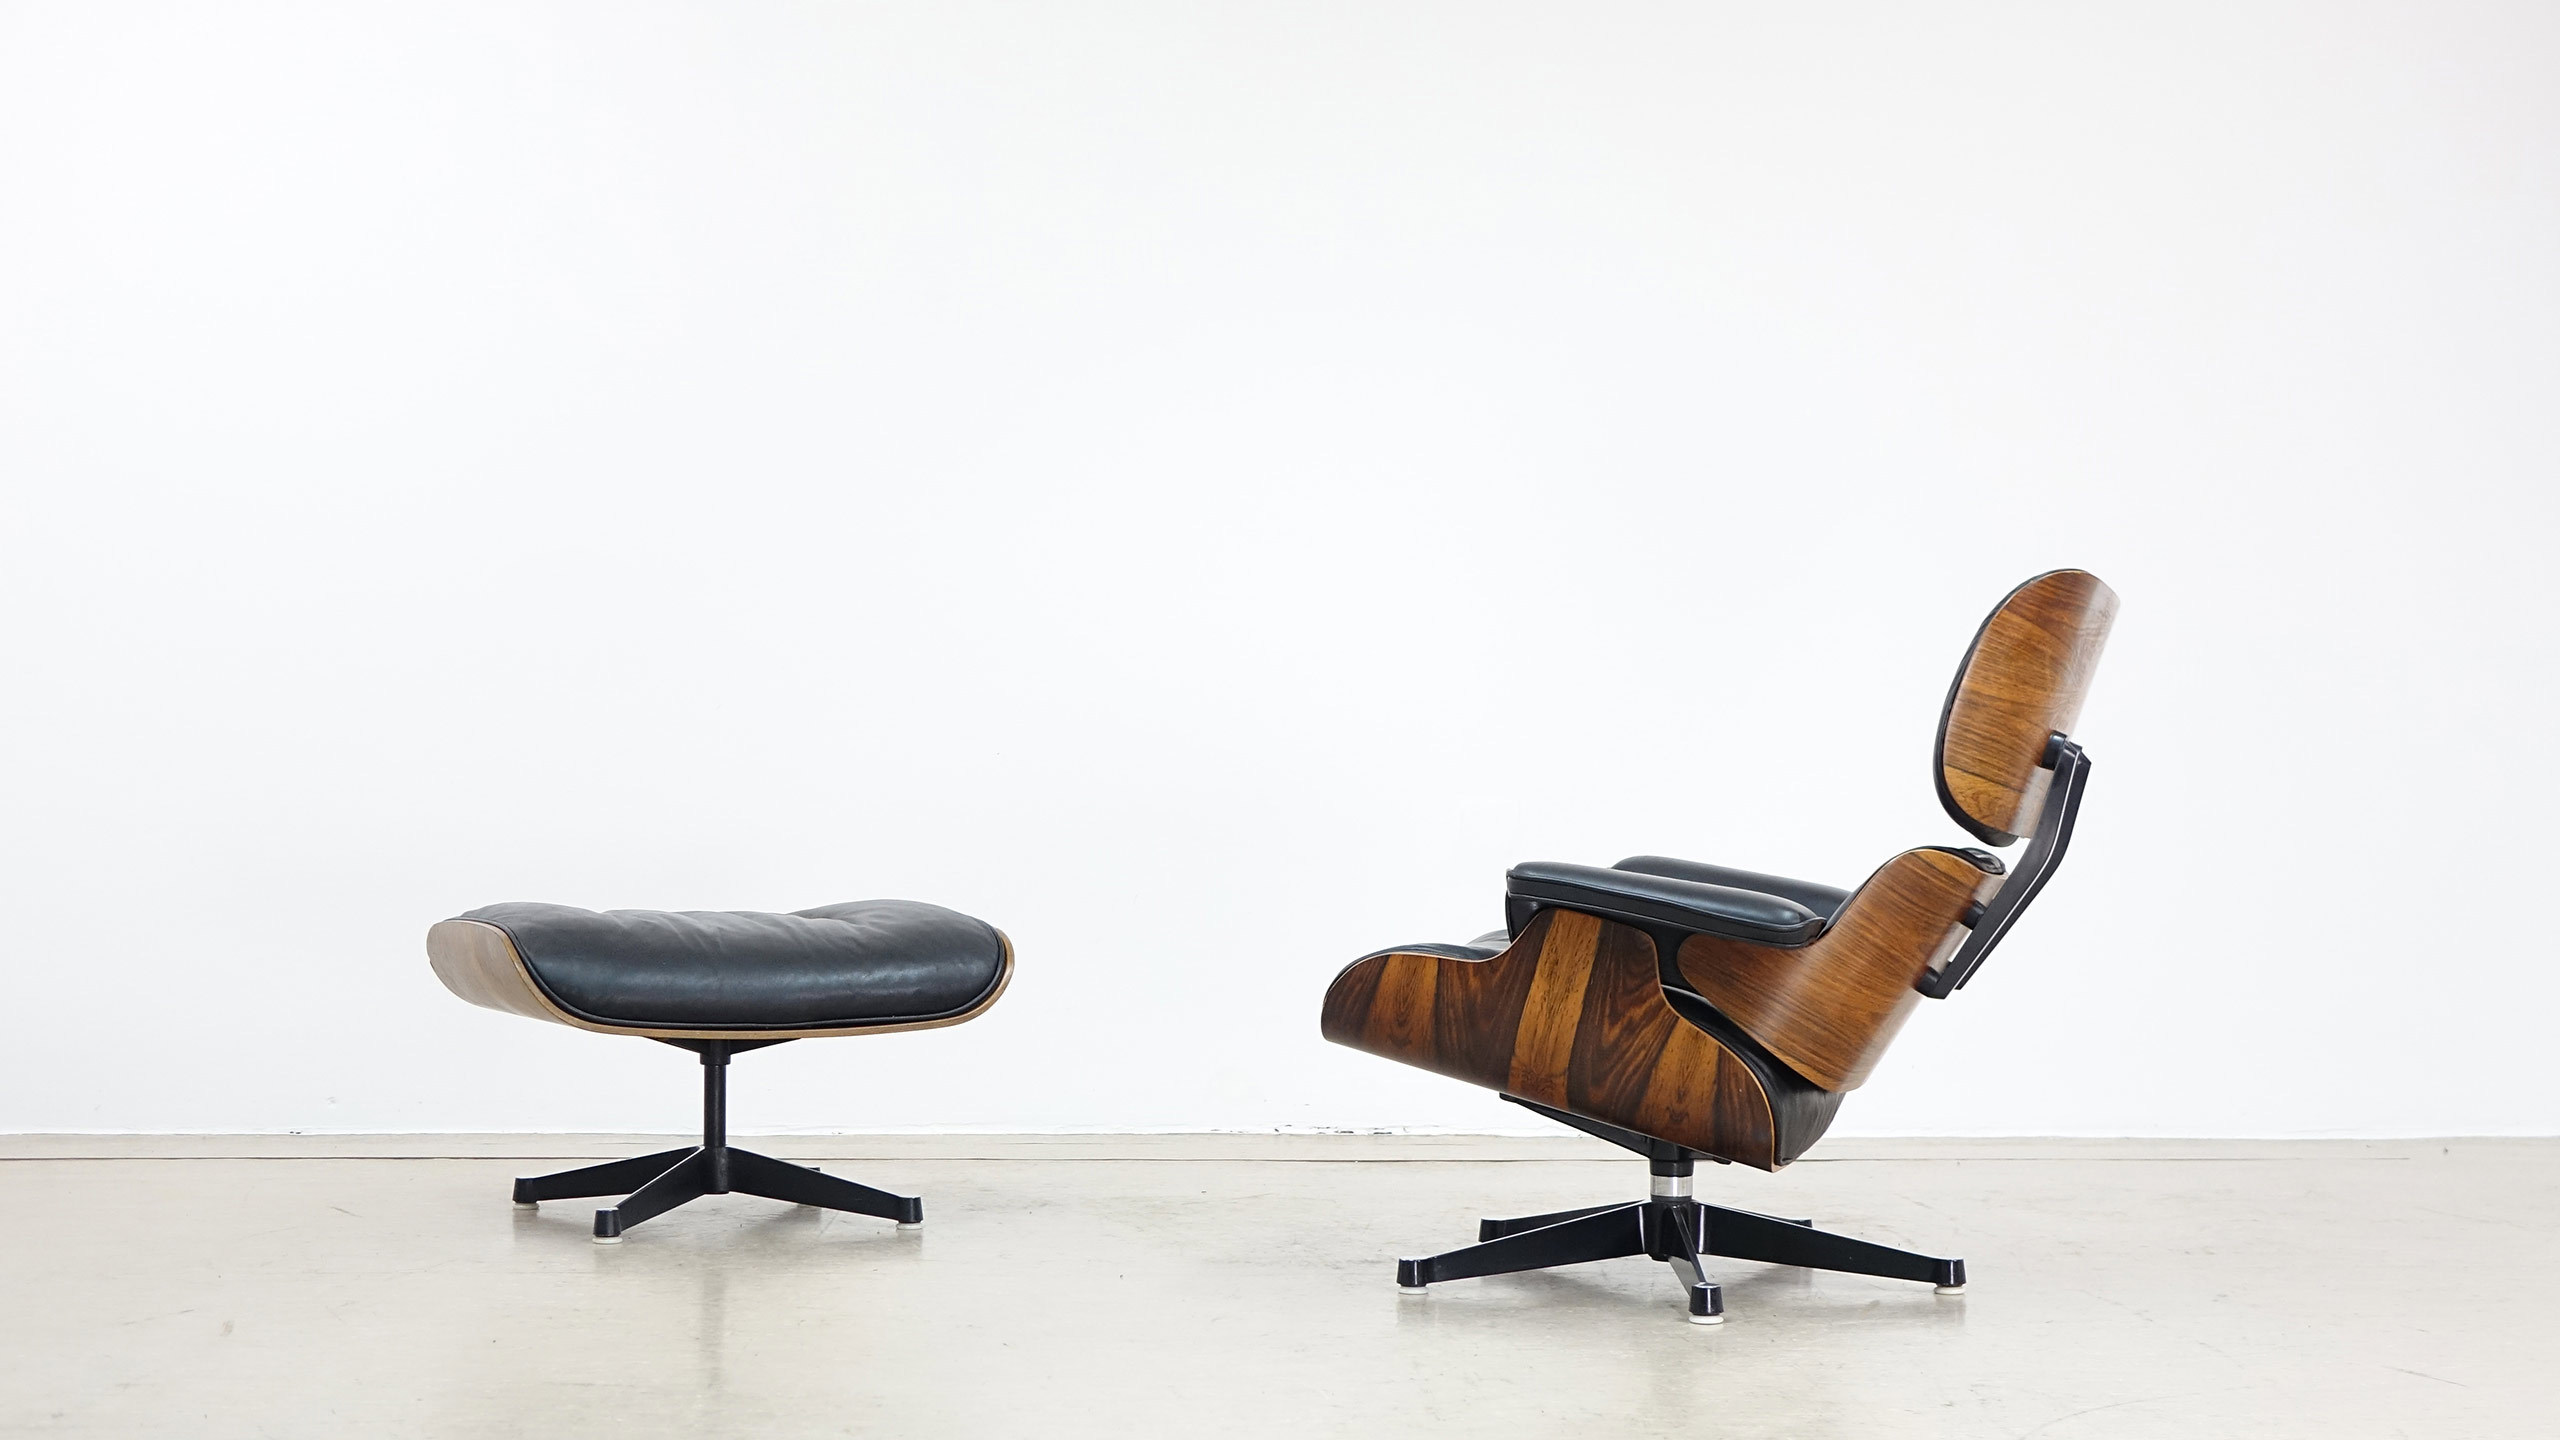 Charles & Ray Eames Lounge Chair by Contura & Fehlbaum